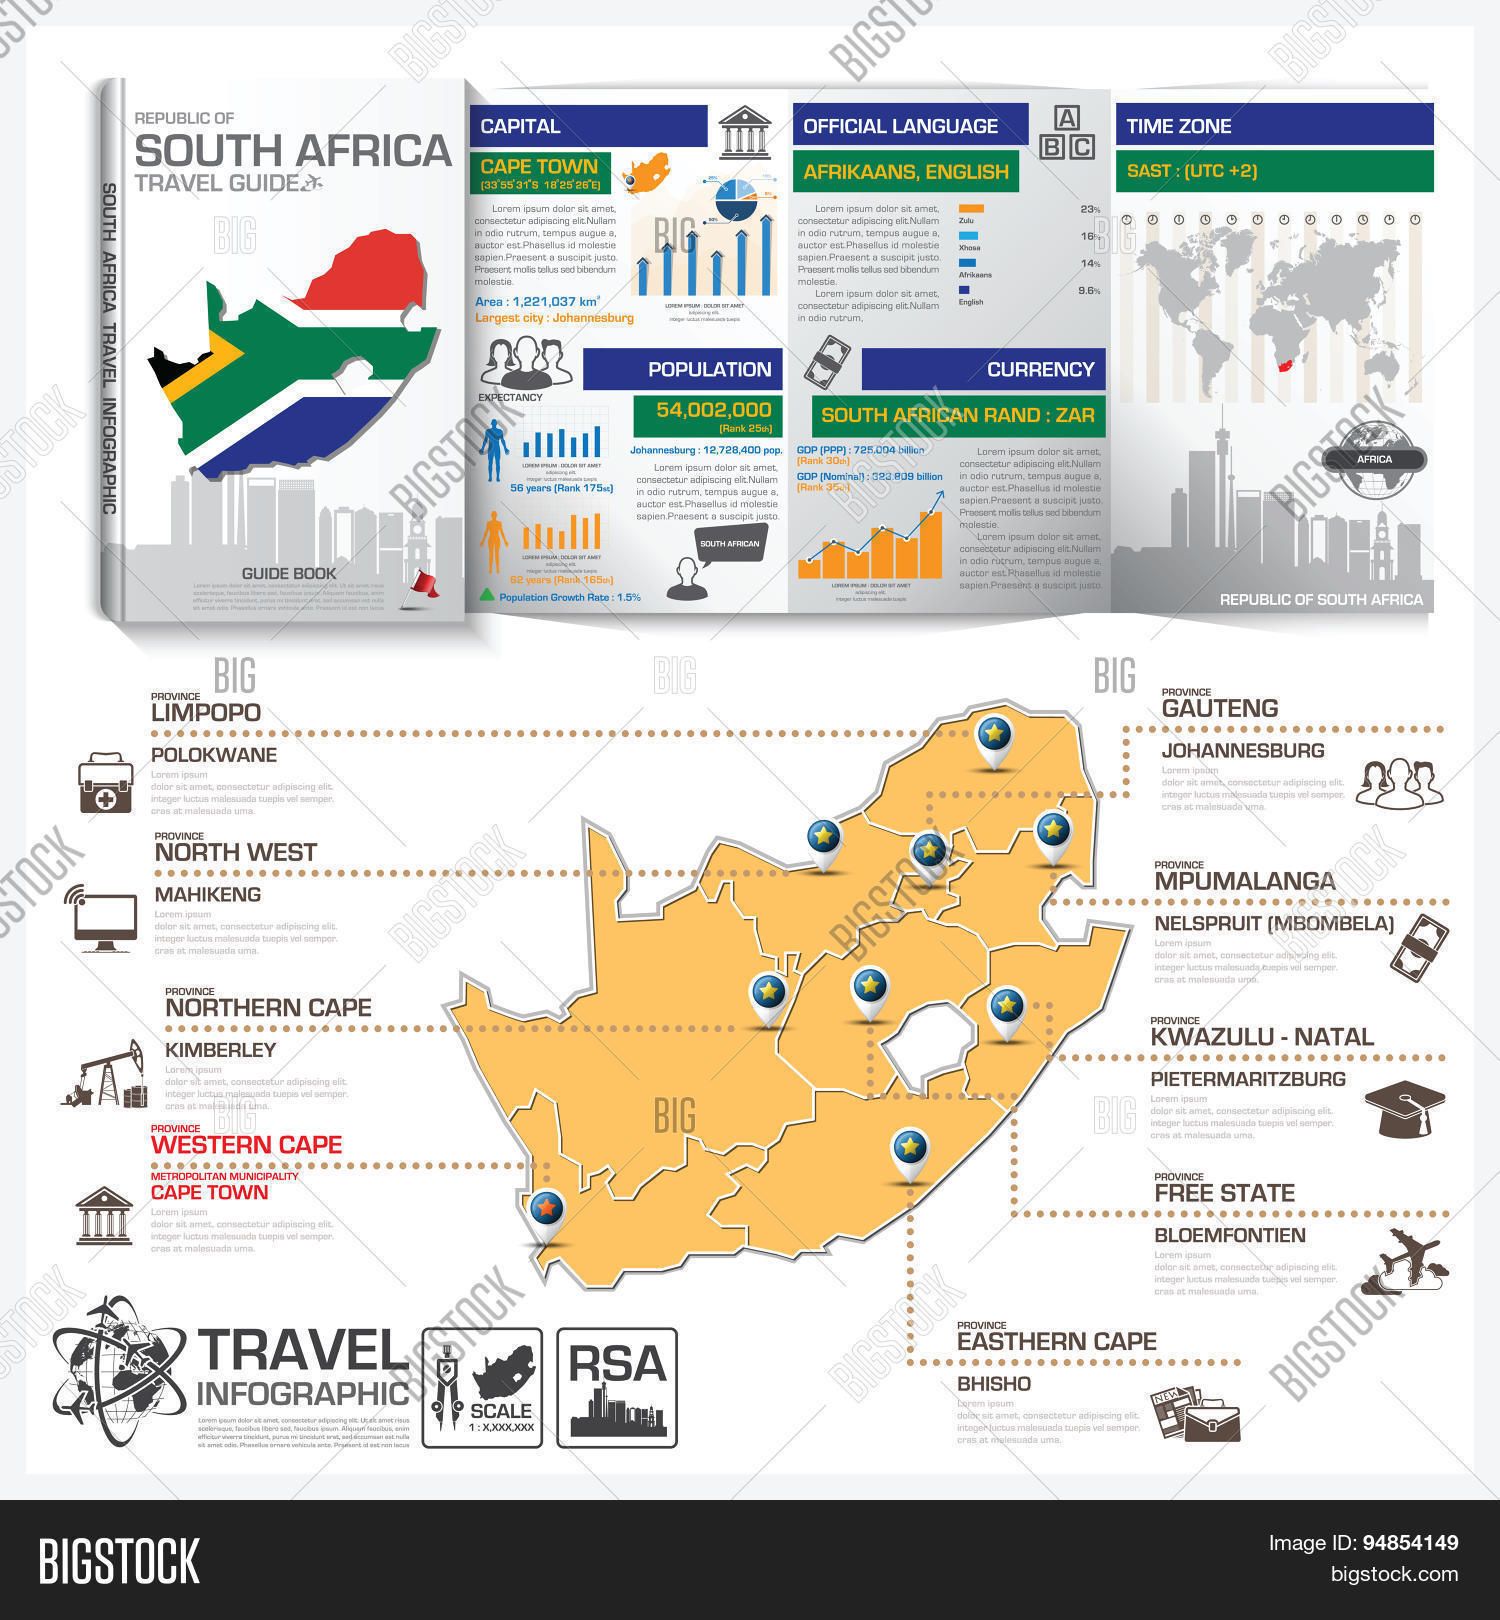 Graphic Design Pricing Guide South Africa